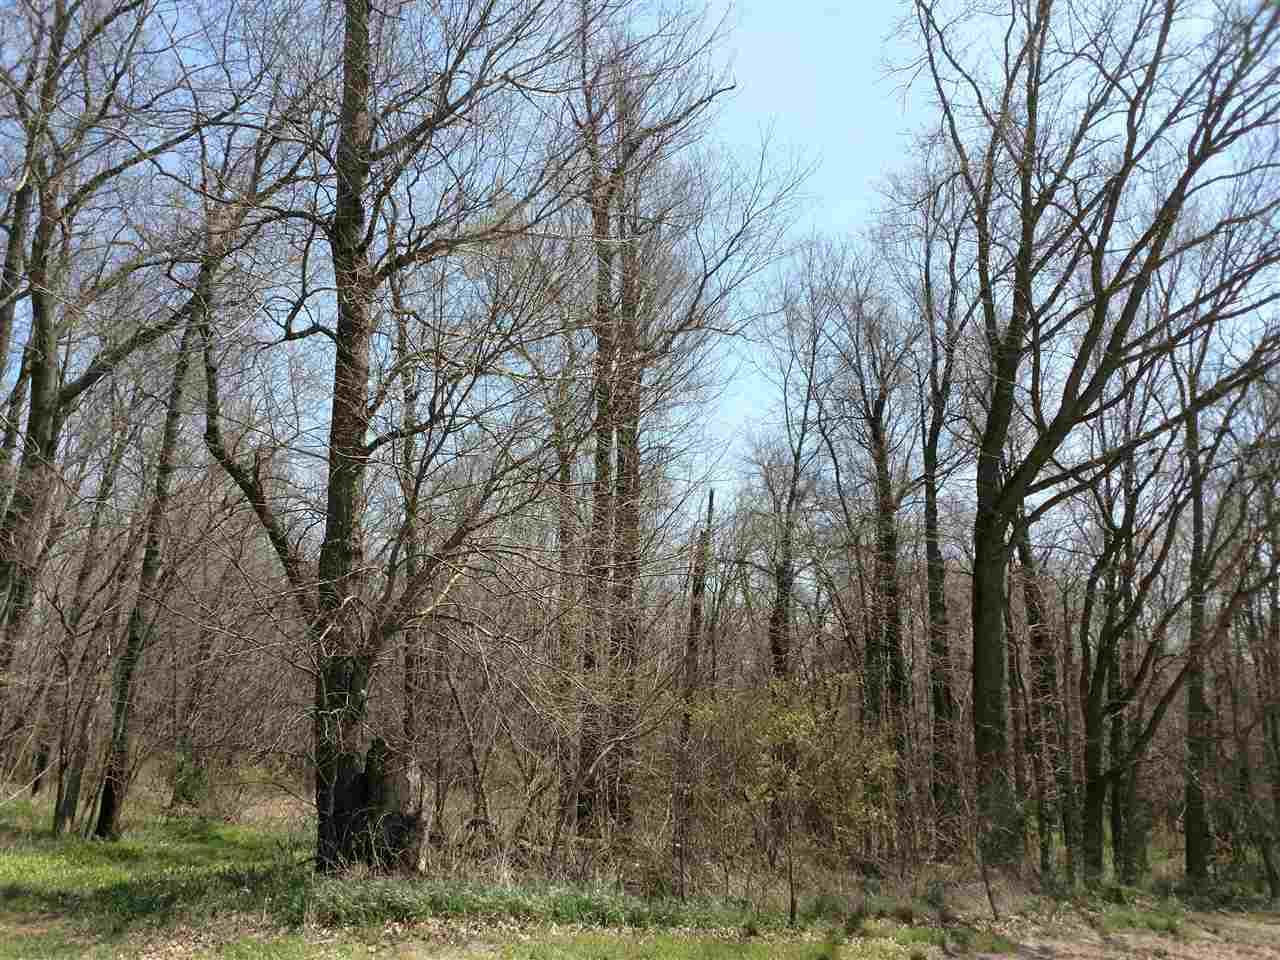 TBD State Rd 19, Etna Green, IN 46524